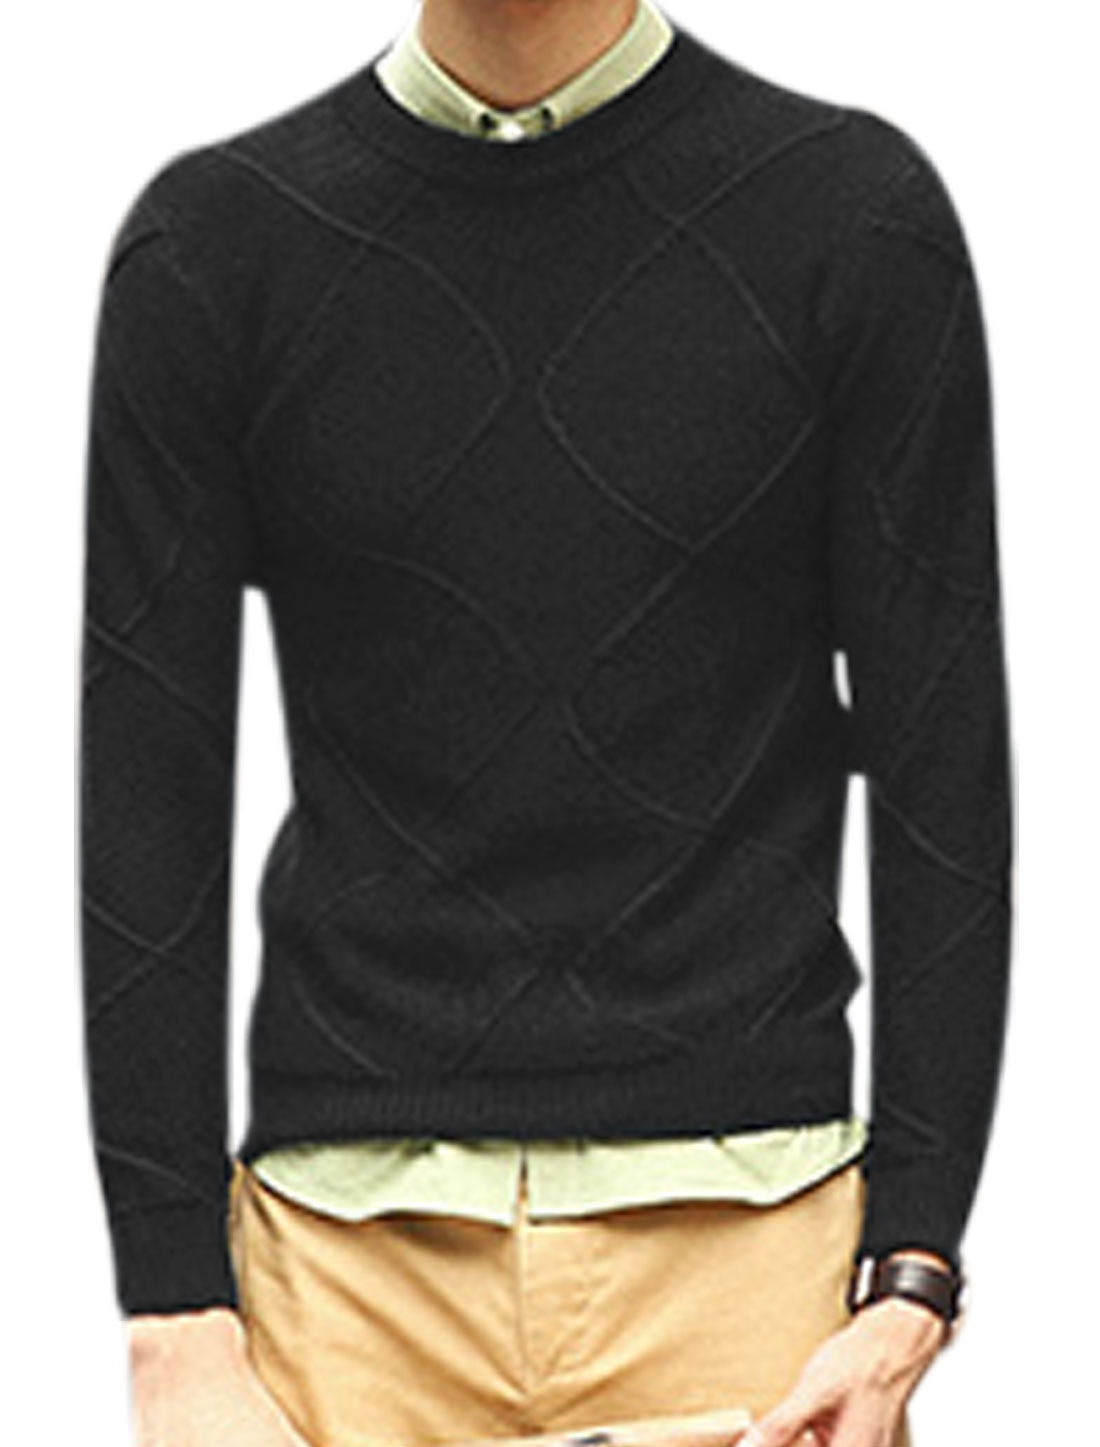 Men Argyle Design Ribbed Cuffs w Hem Casual Sweater Black M